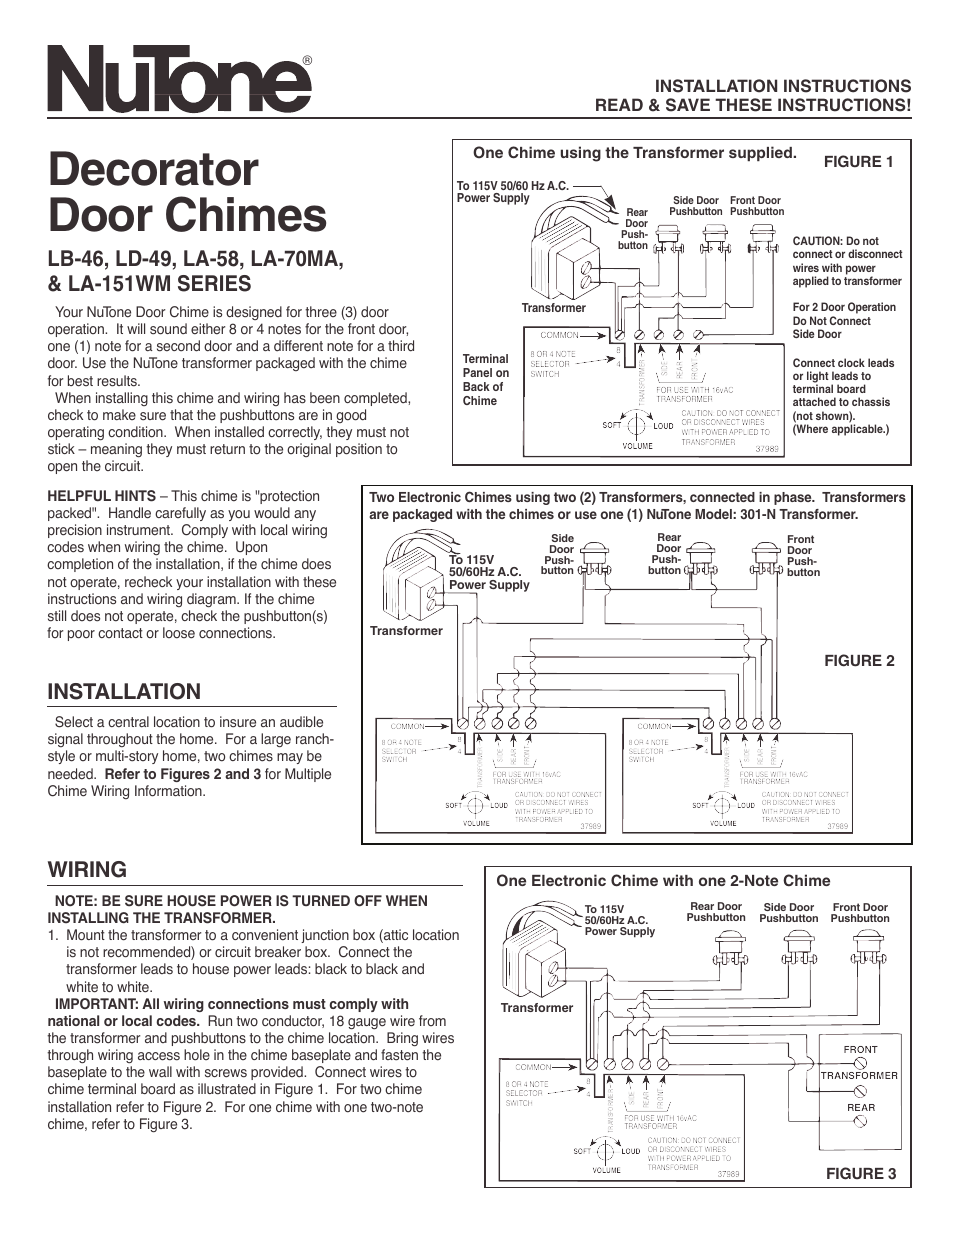 Nutone Door Chime Wiring Diagram : 32 Wiring Diagram